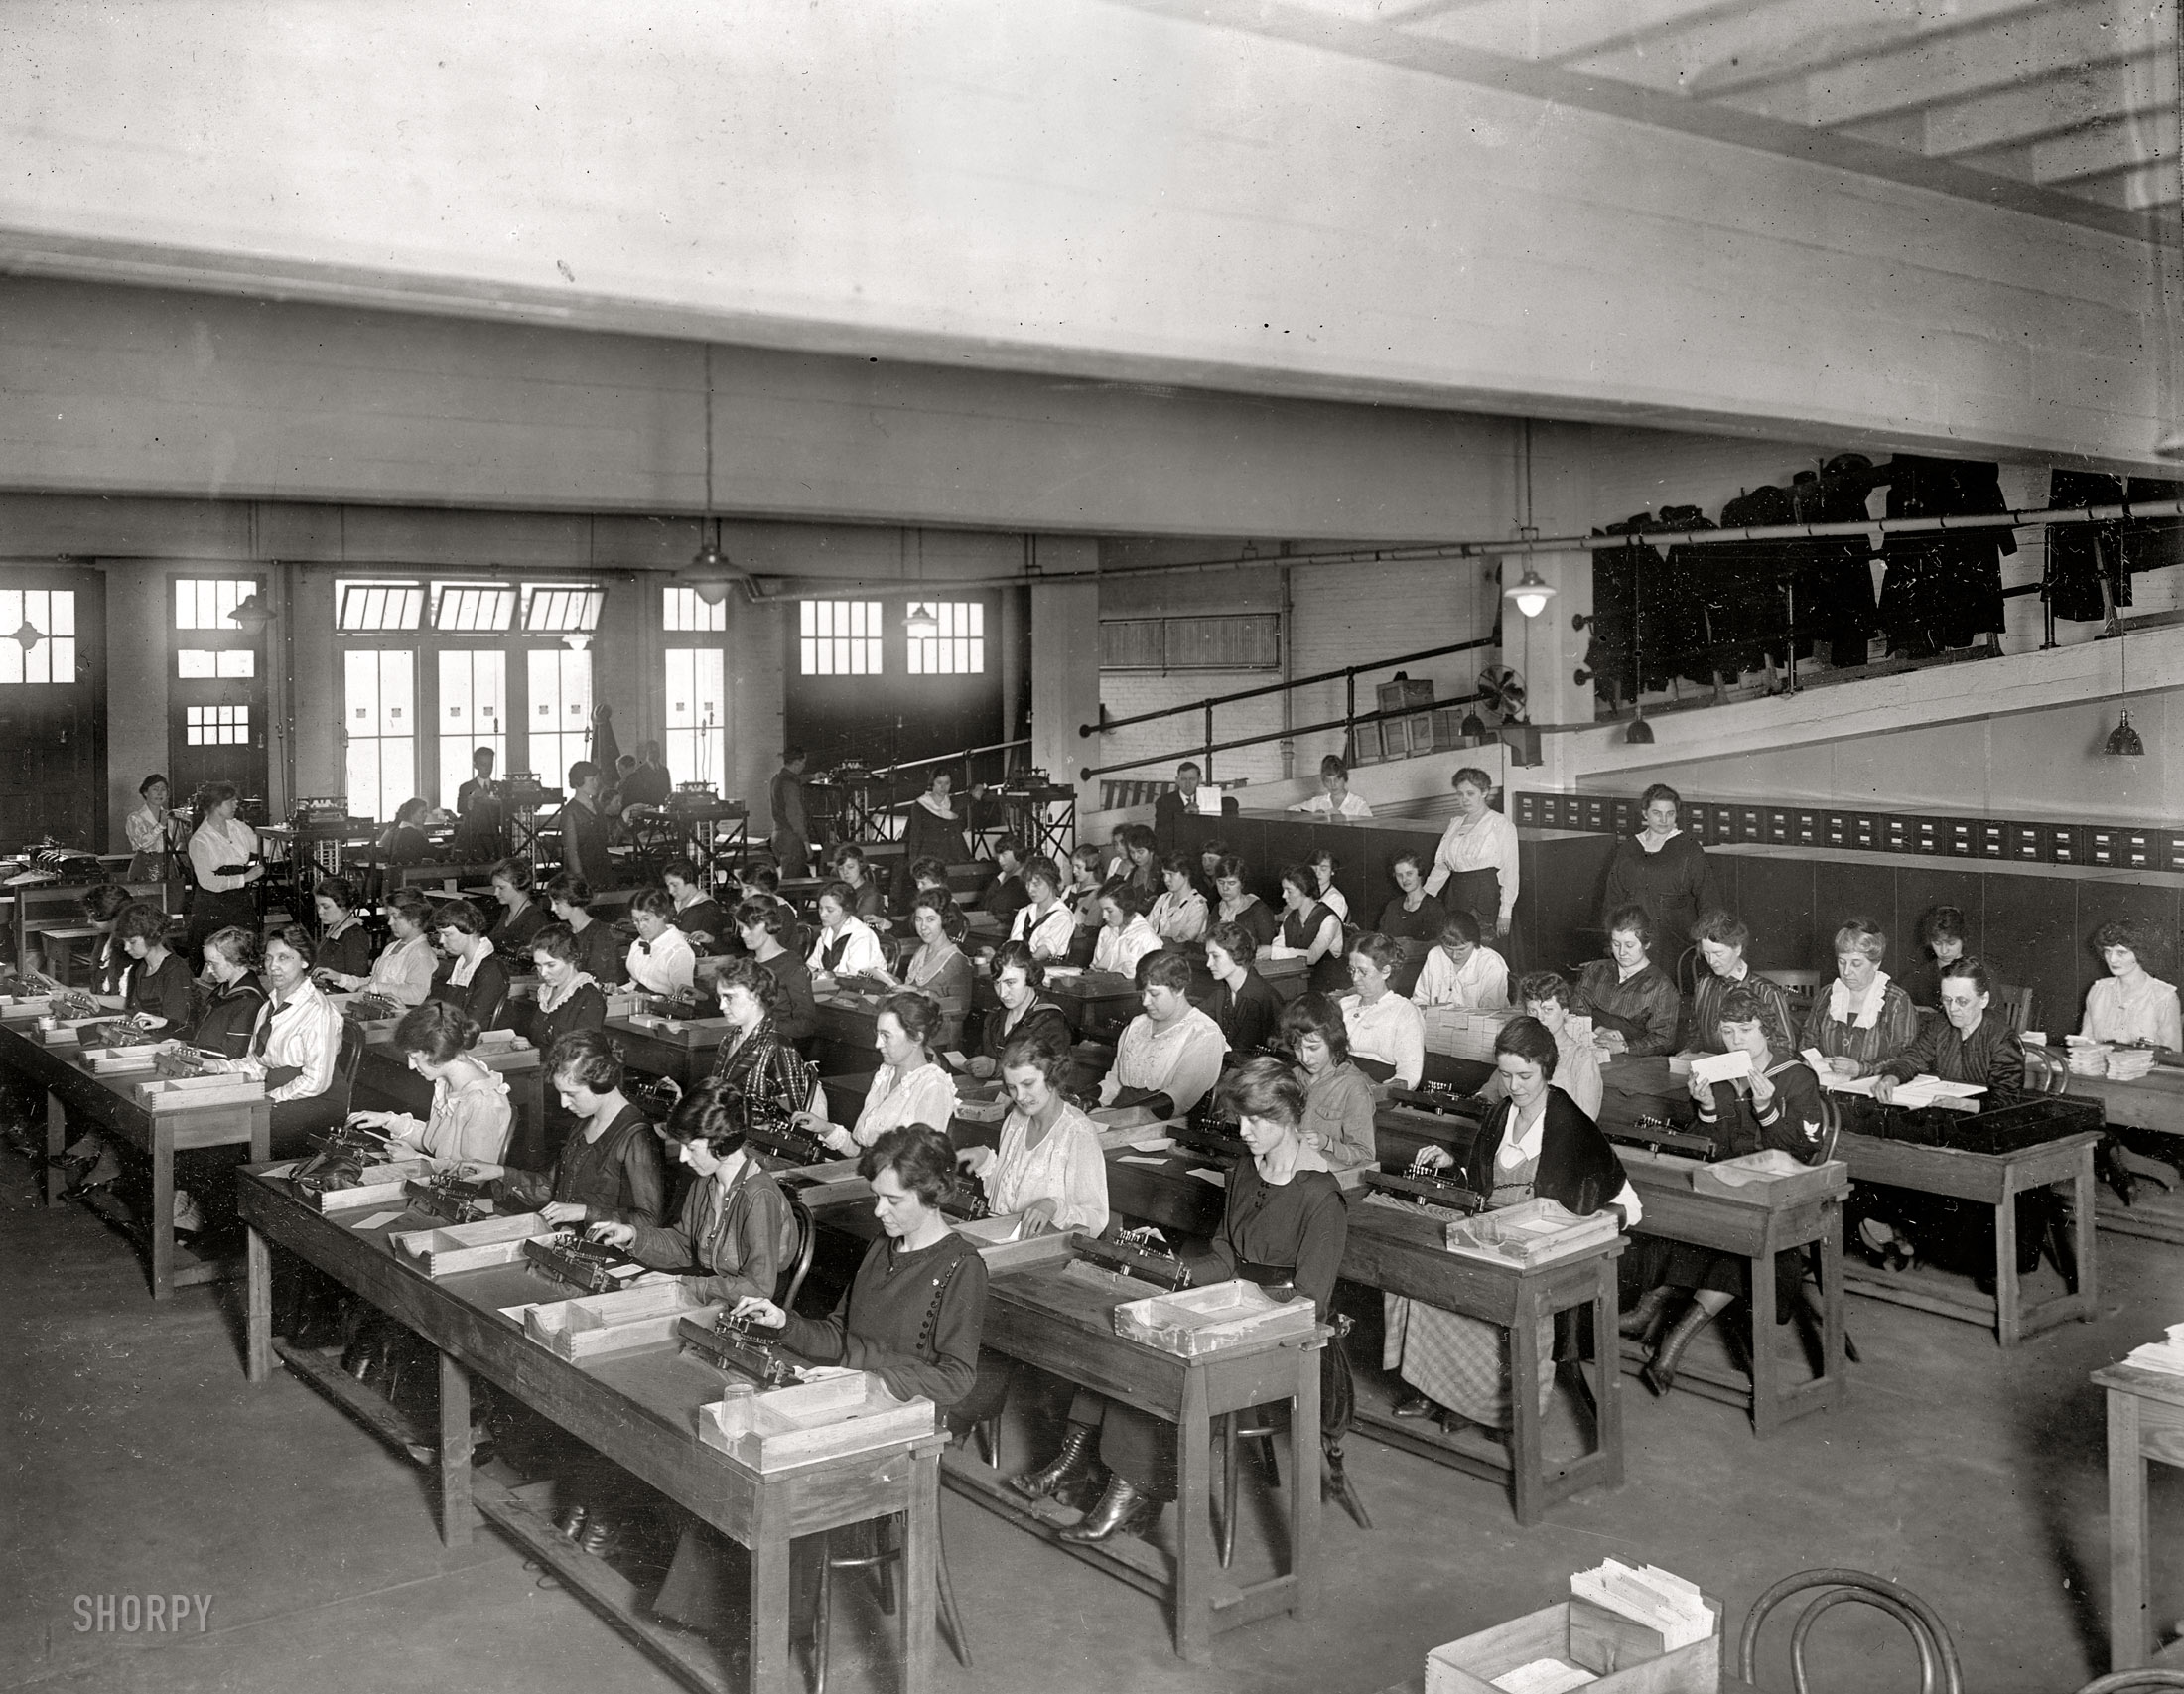 1920 Tabulating Machine Co. Washington, D.C.